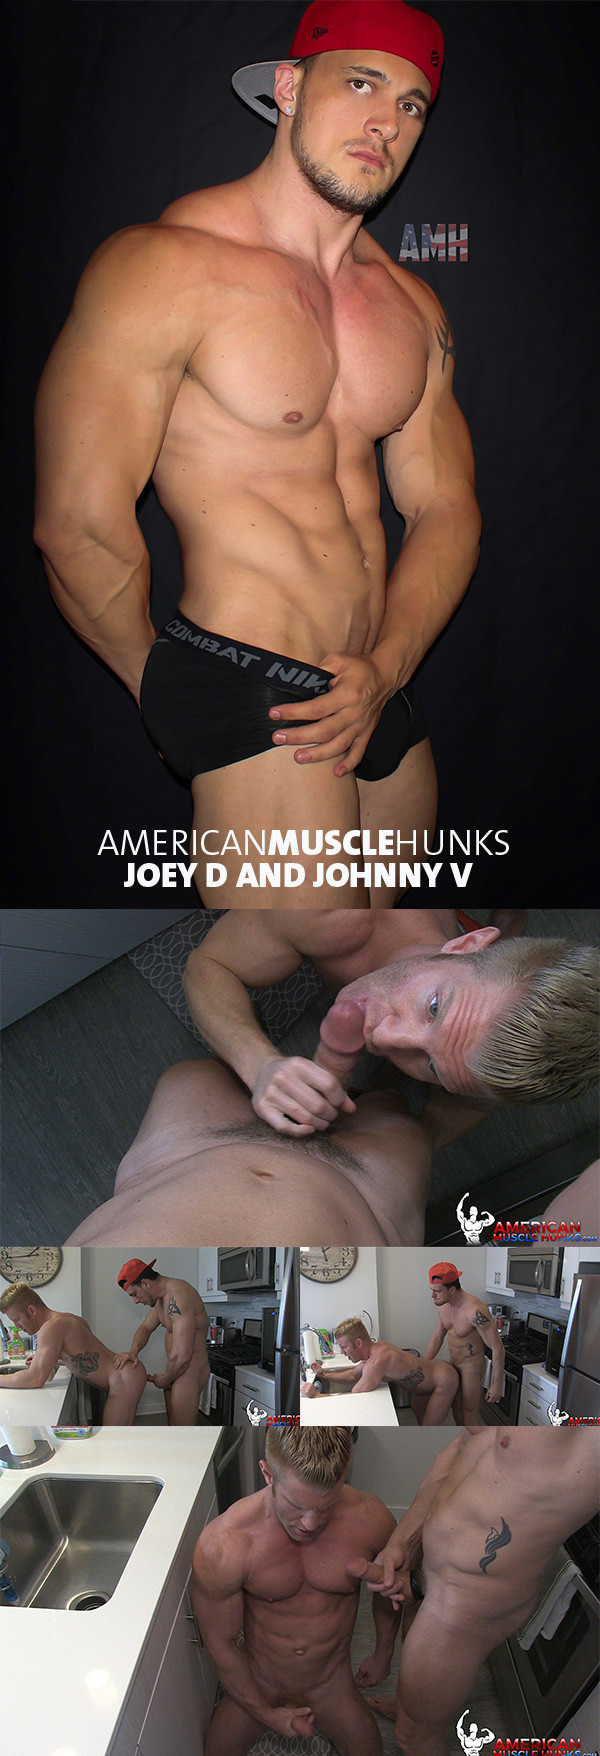 AmericanMuscleHunks Joey D Johnny V Part 2